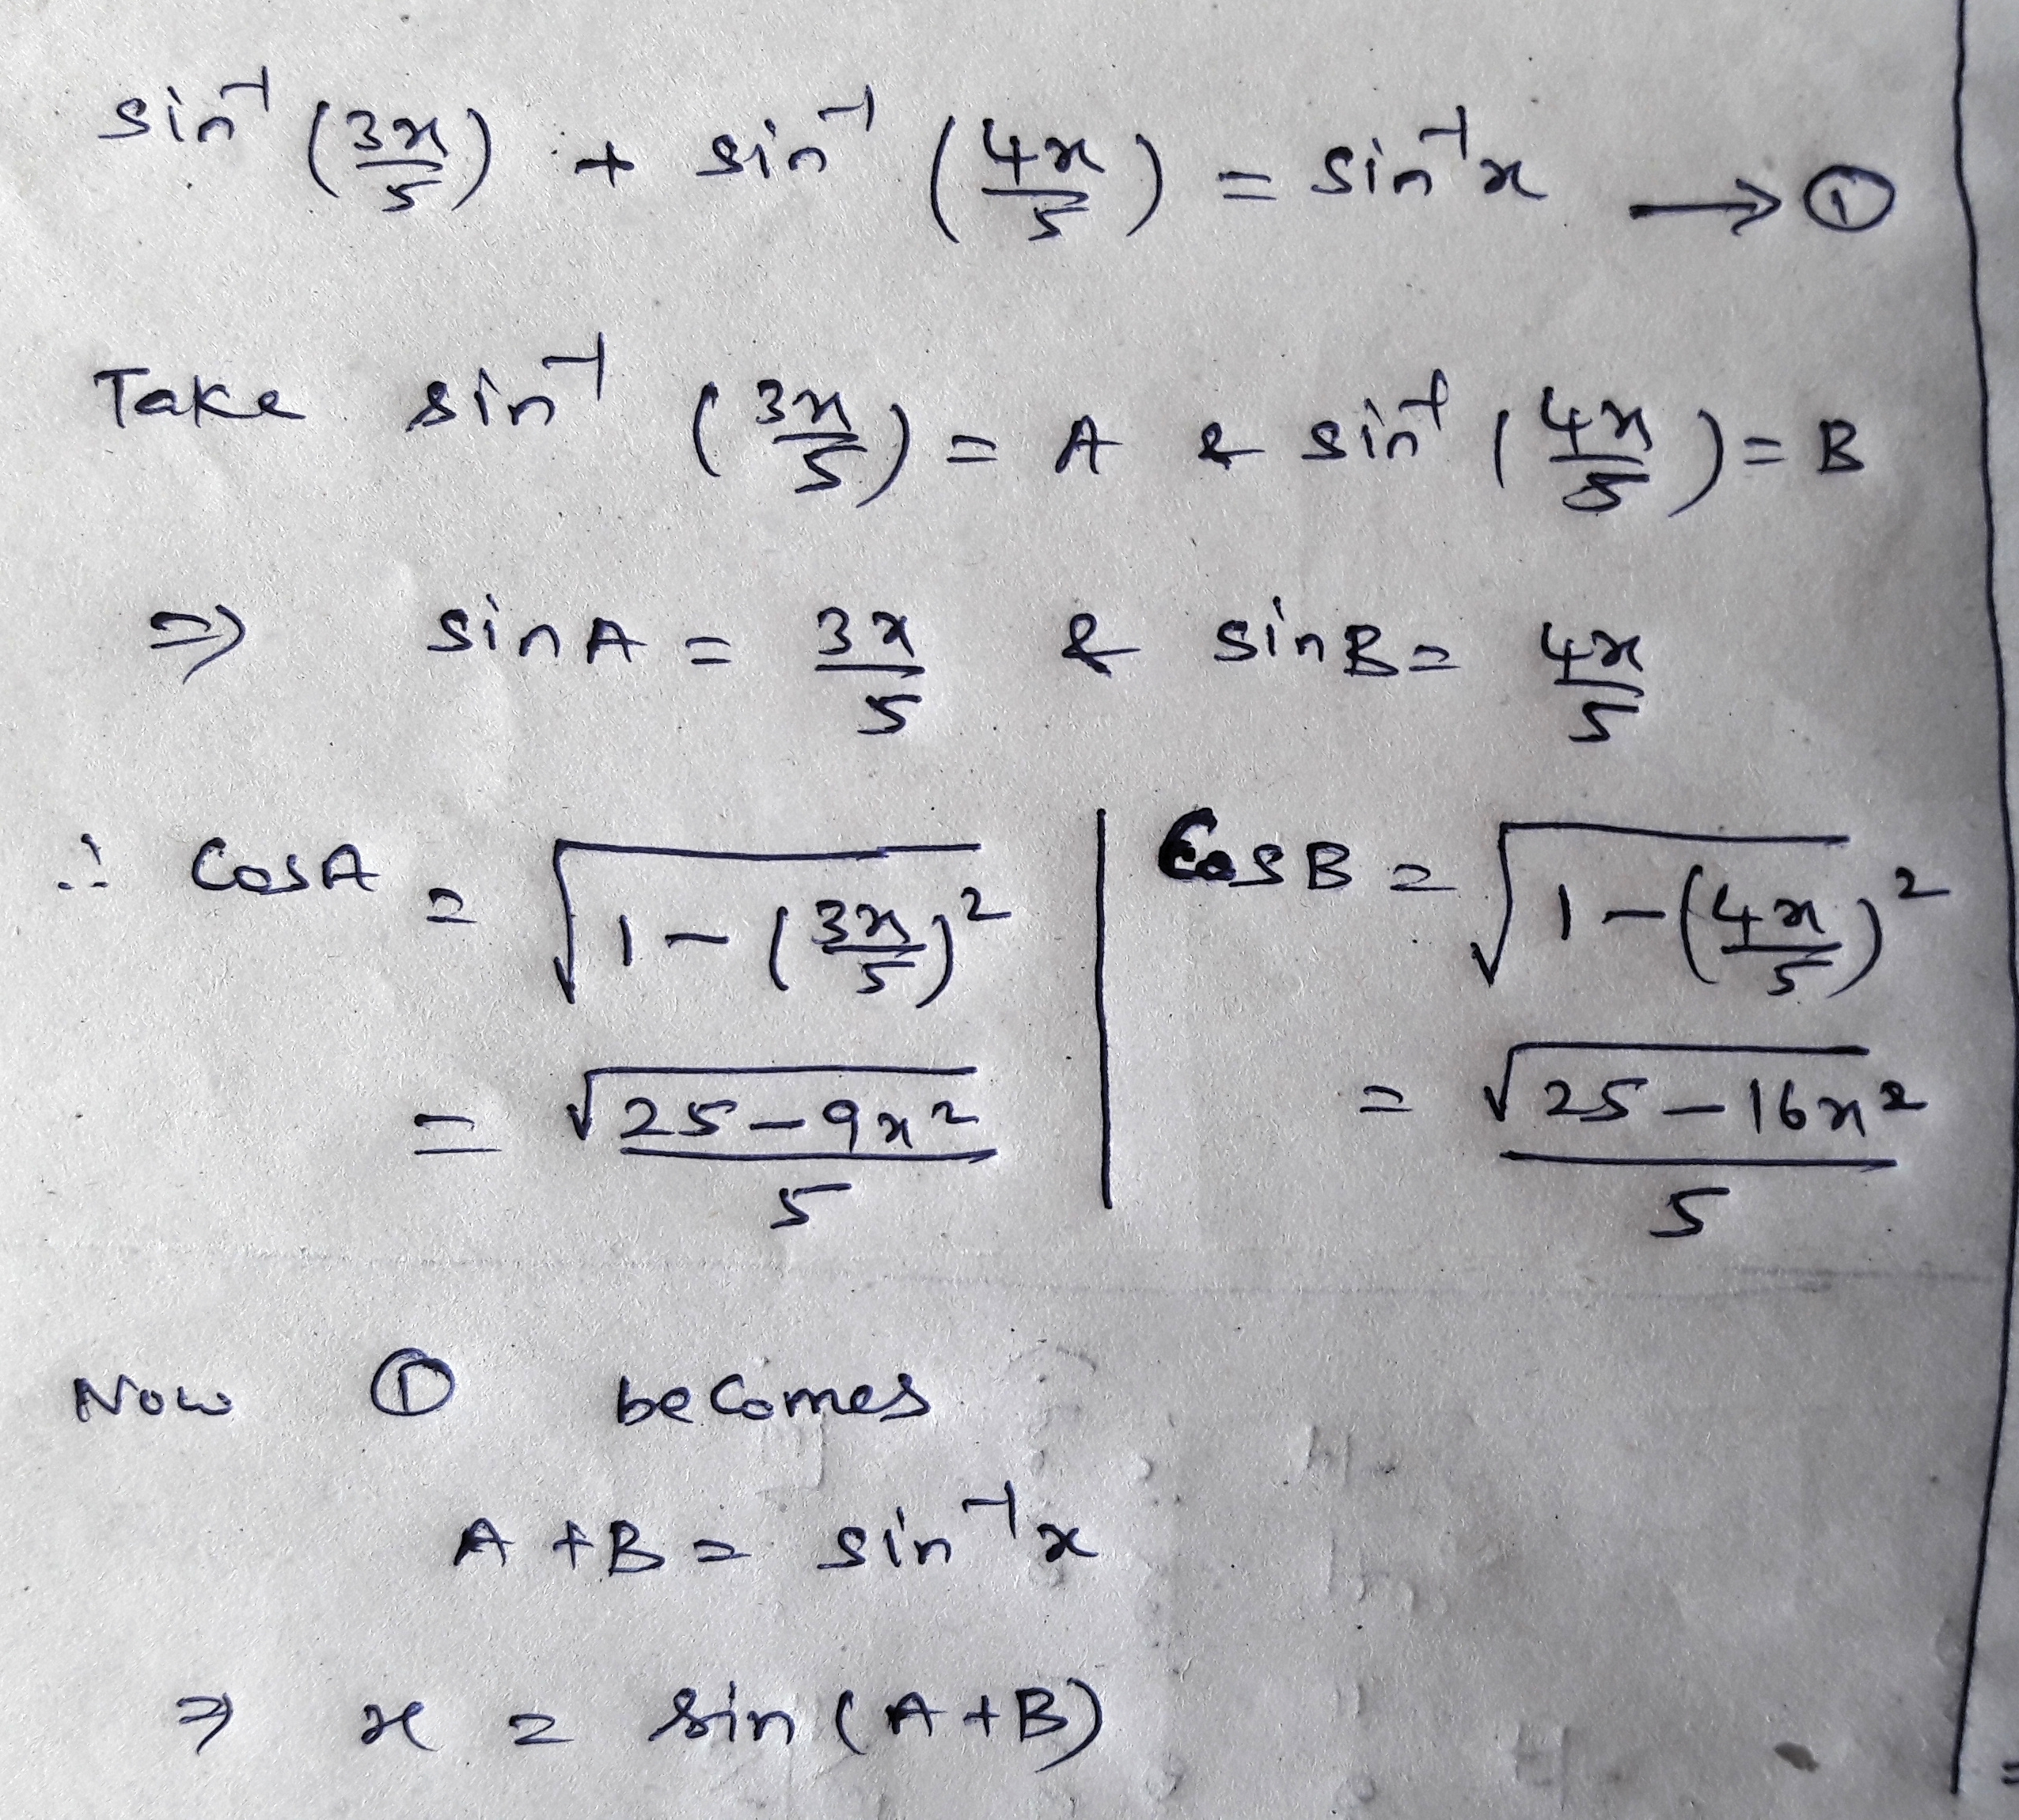 solve the equation sin